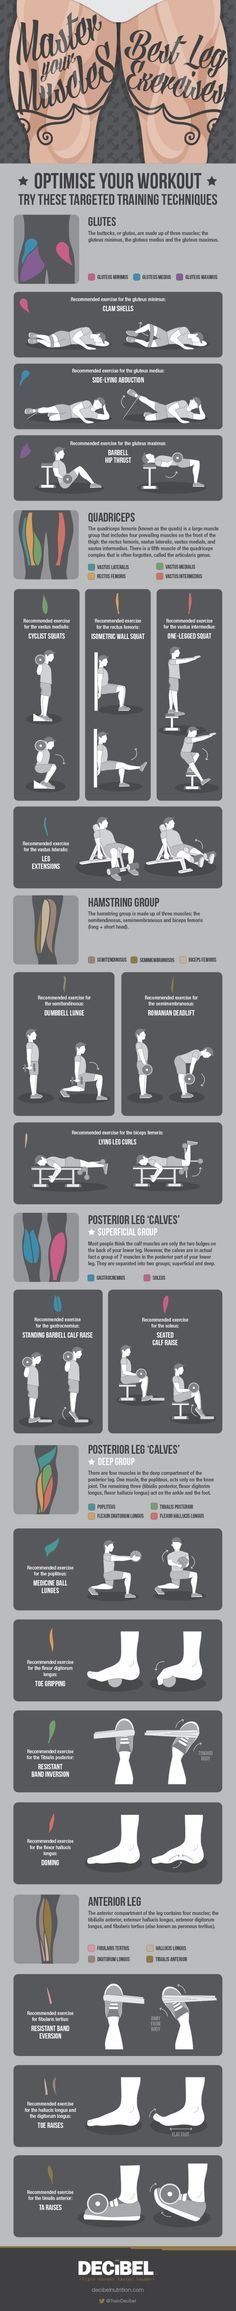 Master Your Muscles: Best Leg Exercises